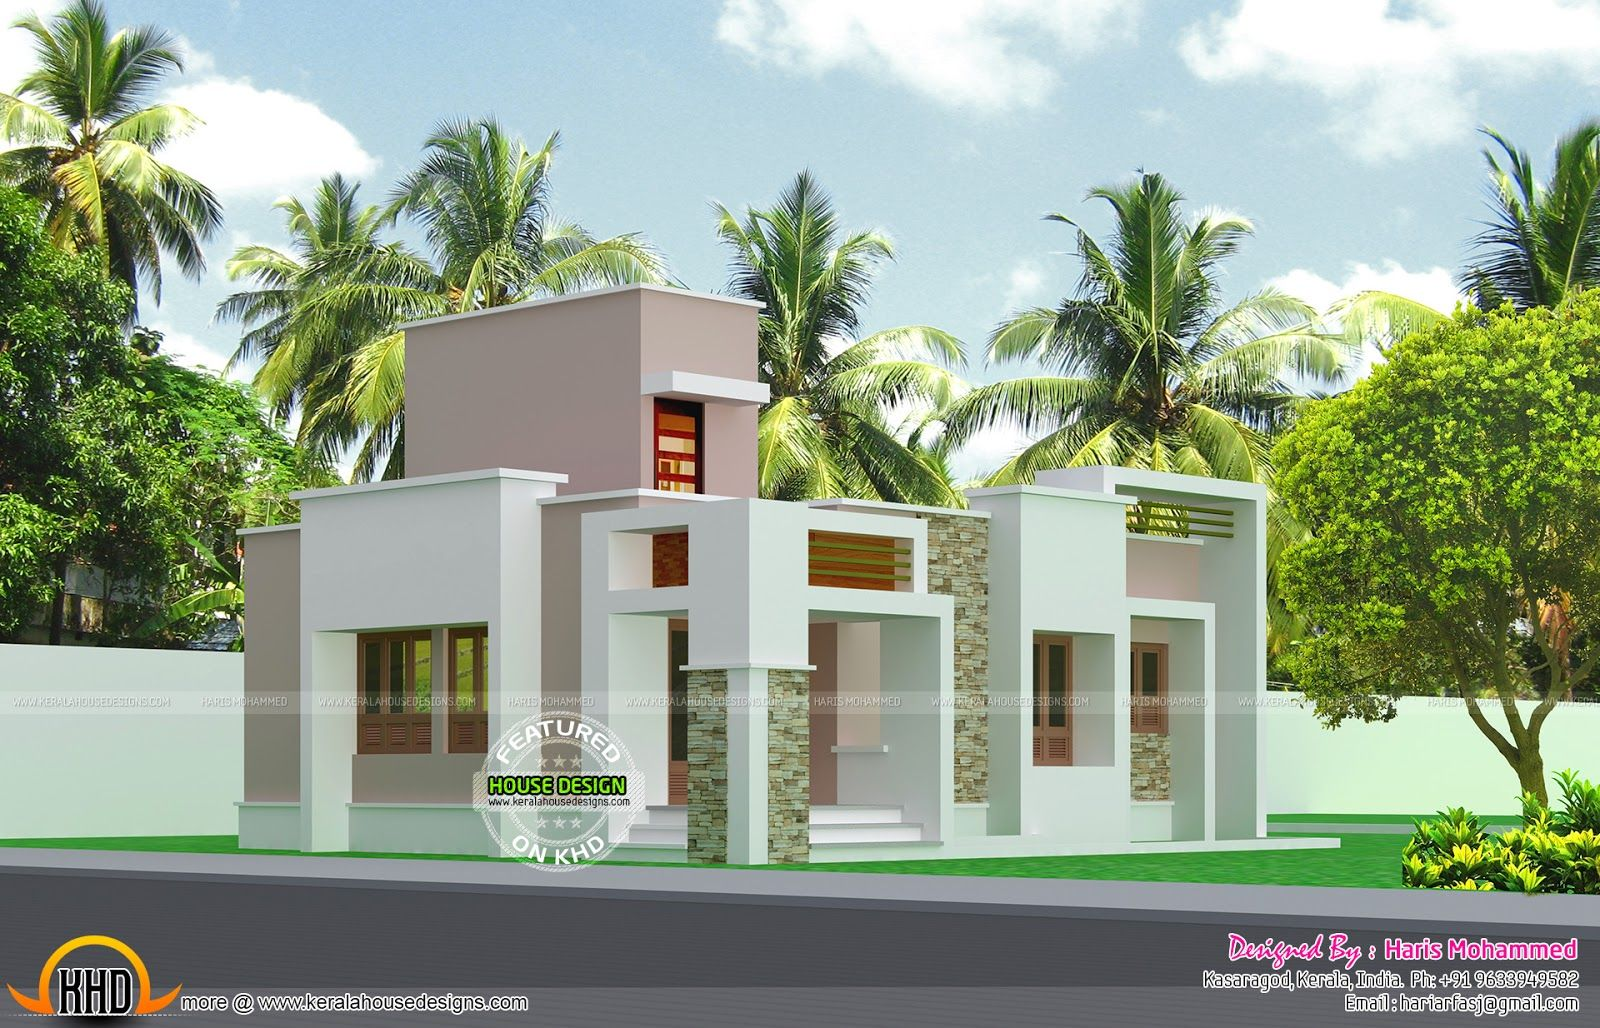 Box Type Low Budget Home Kerala Design And Floor Plans